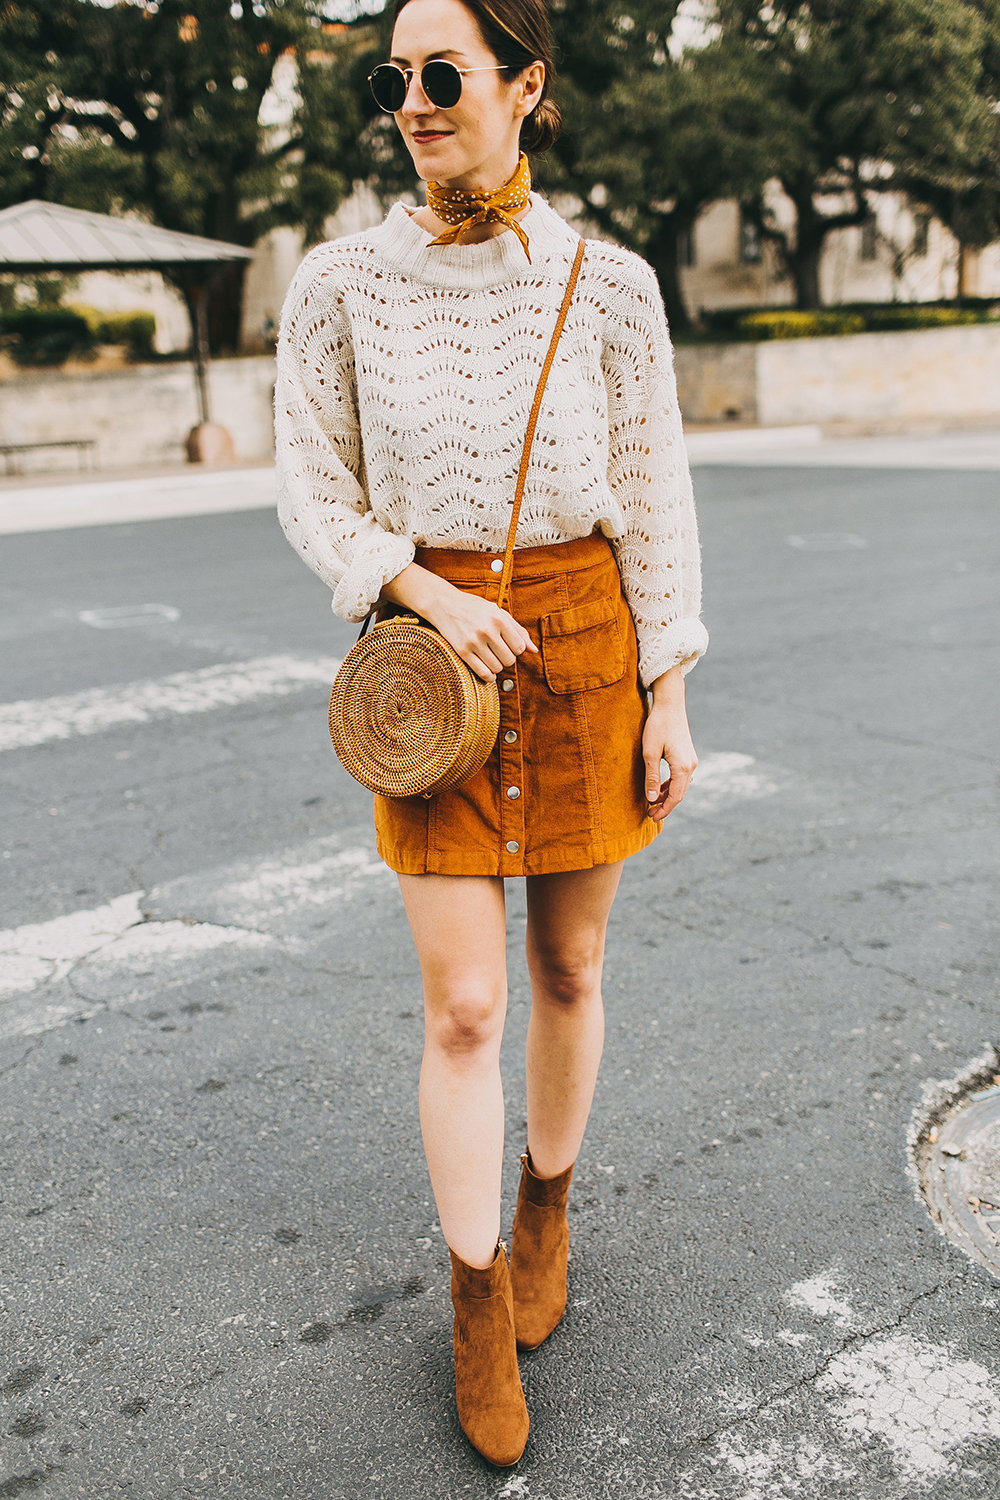 livvyland-blog-olivia-watson-austin-texas-fashion-style-blogger-burnt-orange-corduroy-skirt-bdg-a-line-outfit-5.jpg